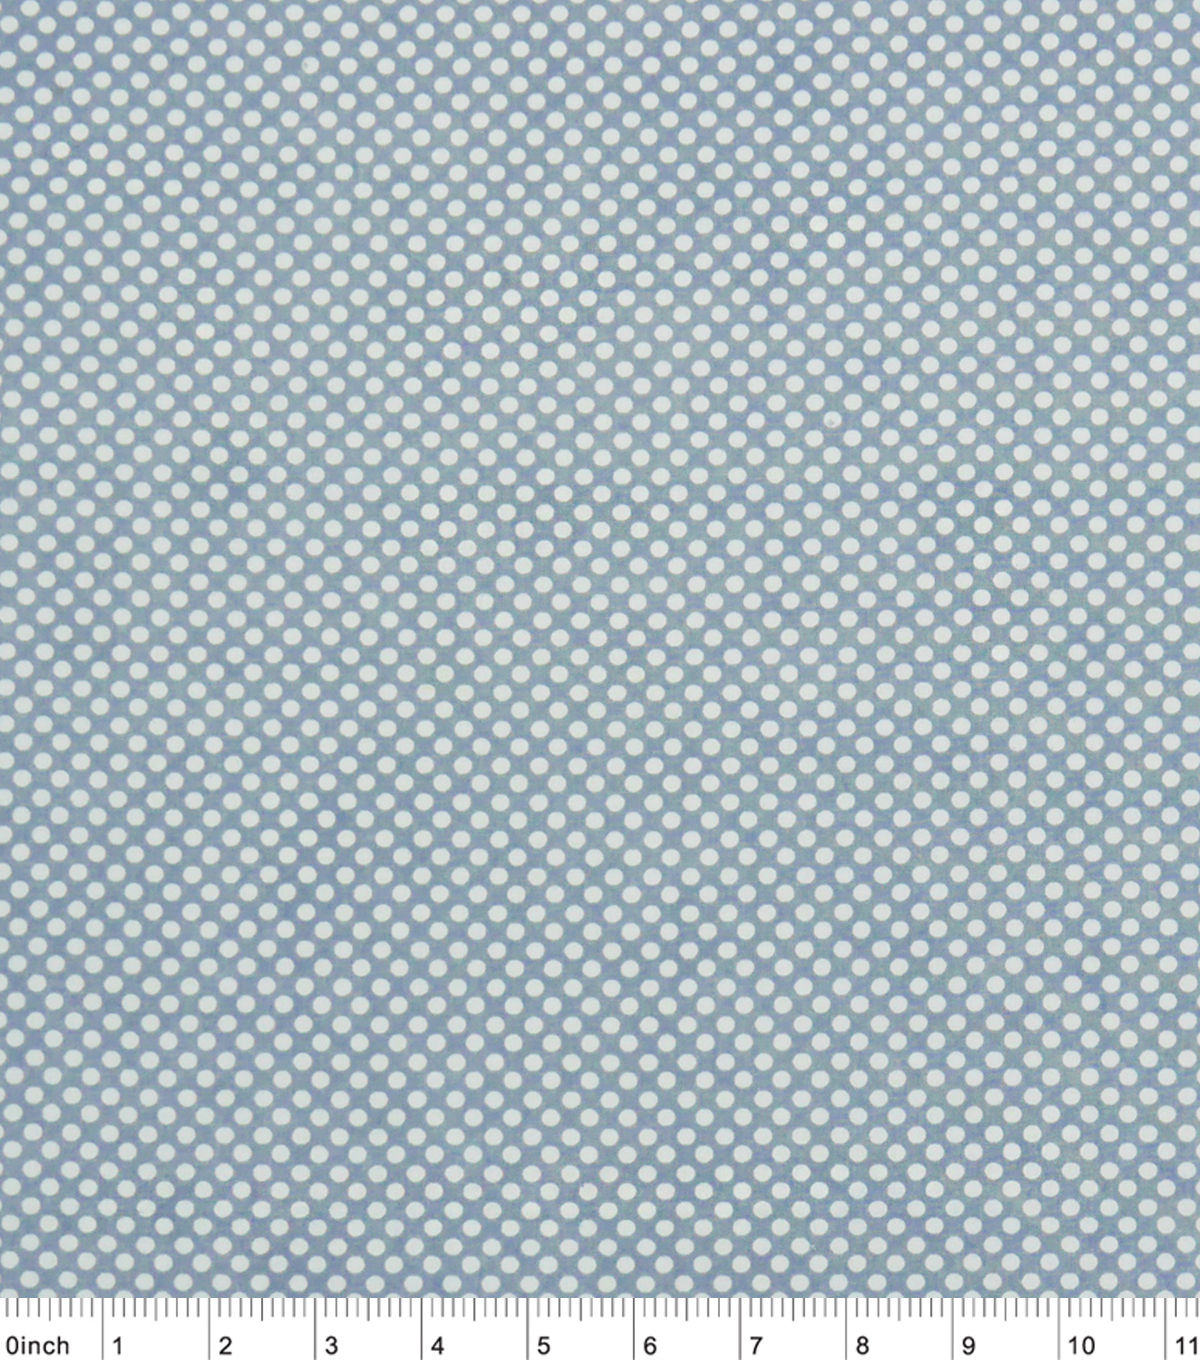 Nursery Cotton Fabric -Grey With White Dots